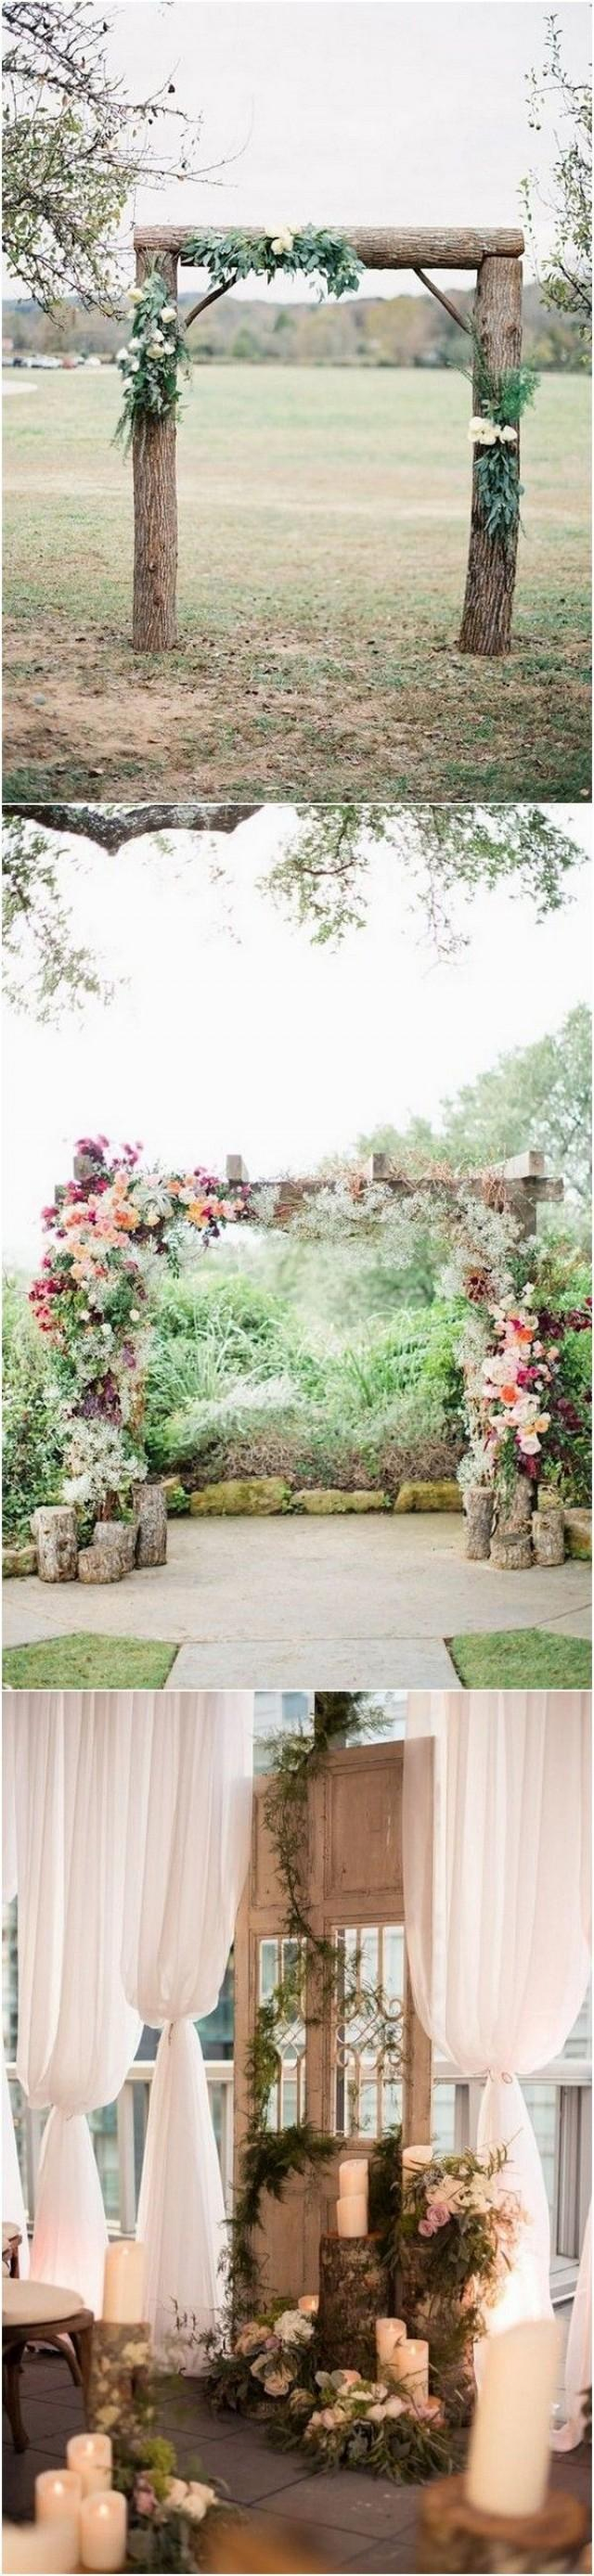 28 Country Rustic Wedding Decoration Ideas With Tree Stumps